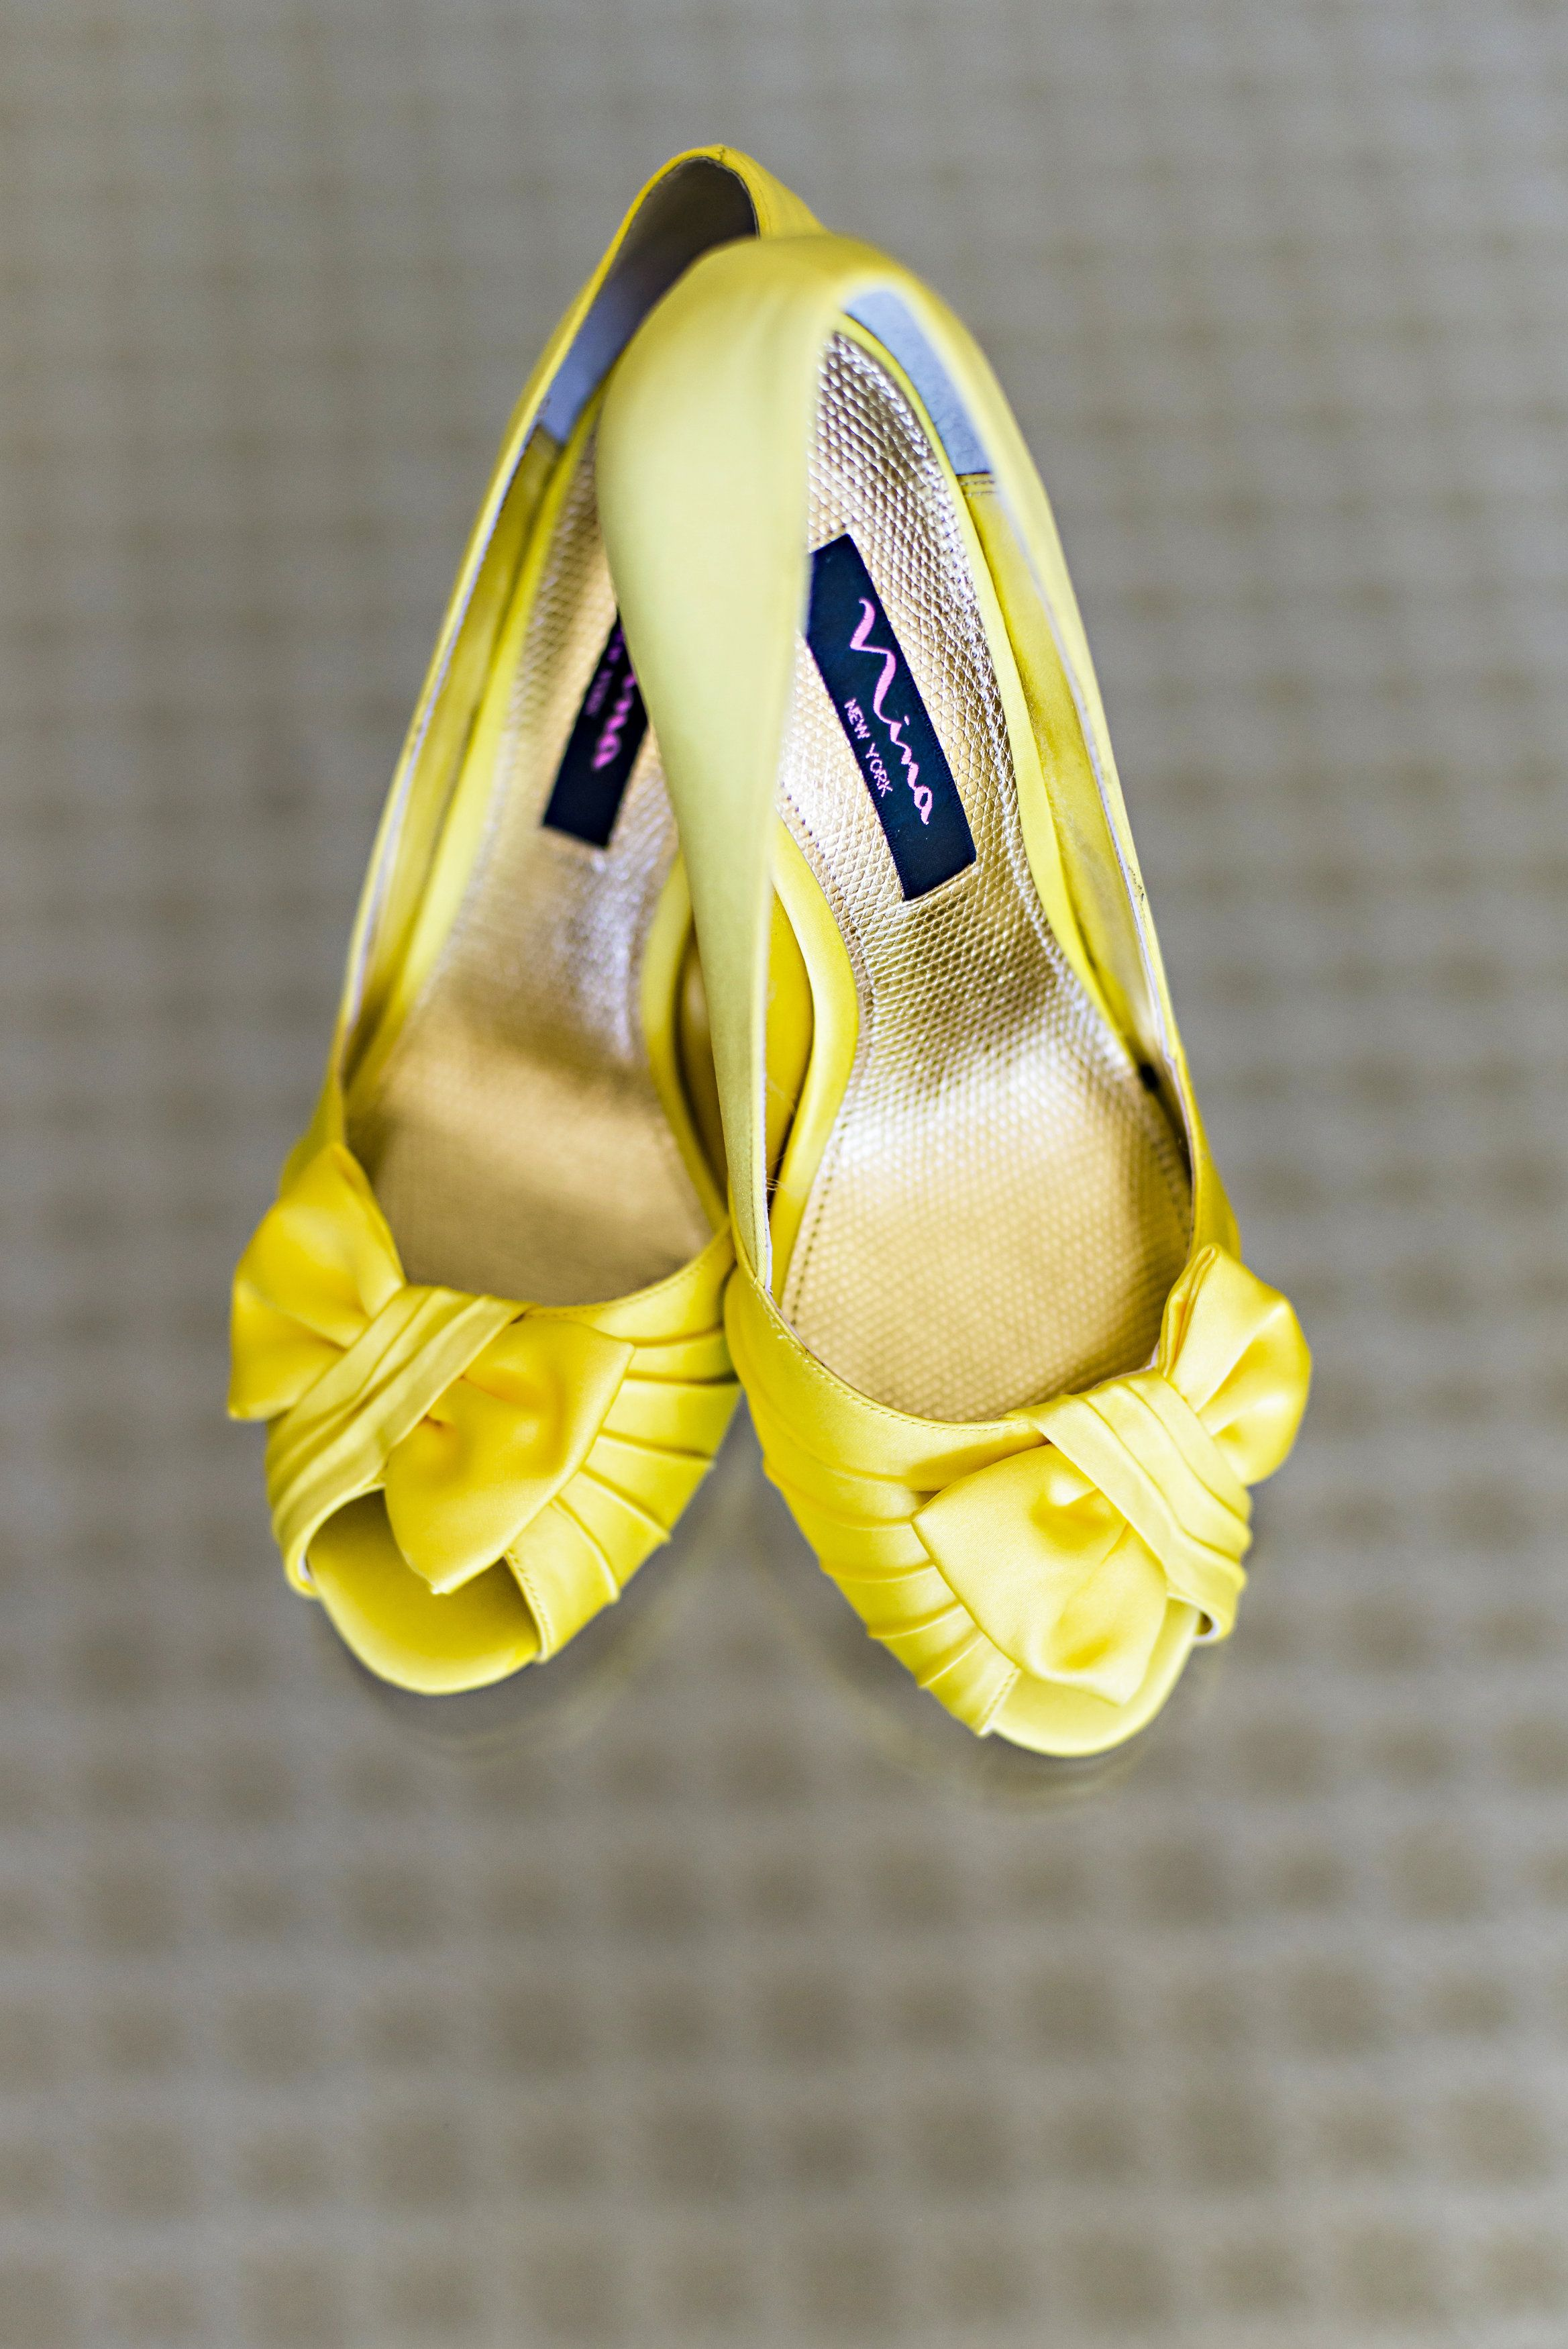 Nina Forbes Canary Luster Satin By Nina Shoes Yellow Wedding Shoes Yellow Shoes Canary Yellow Weddings